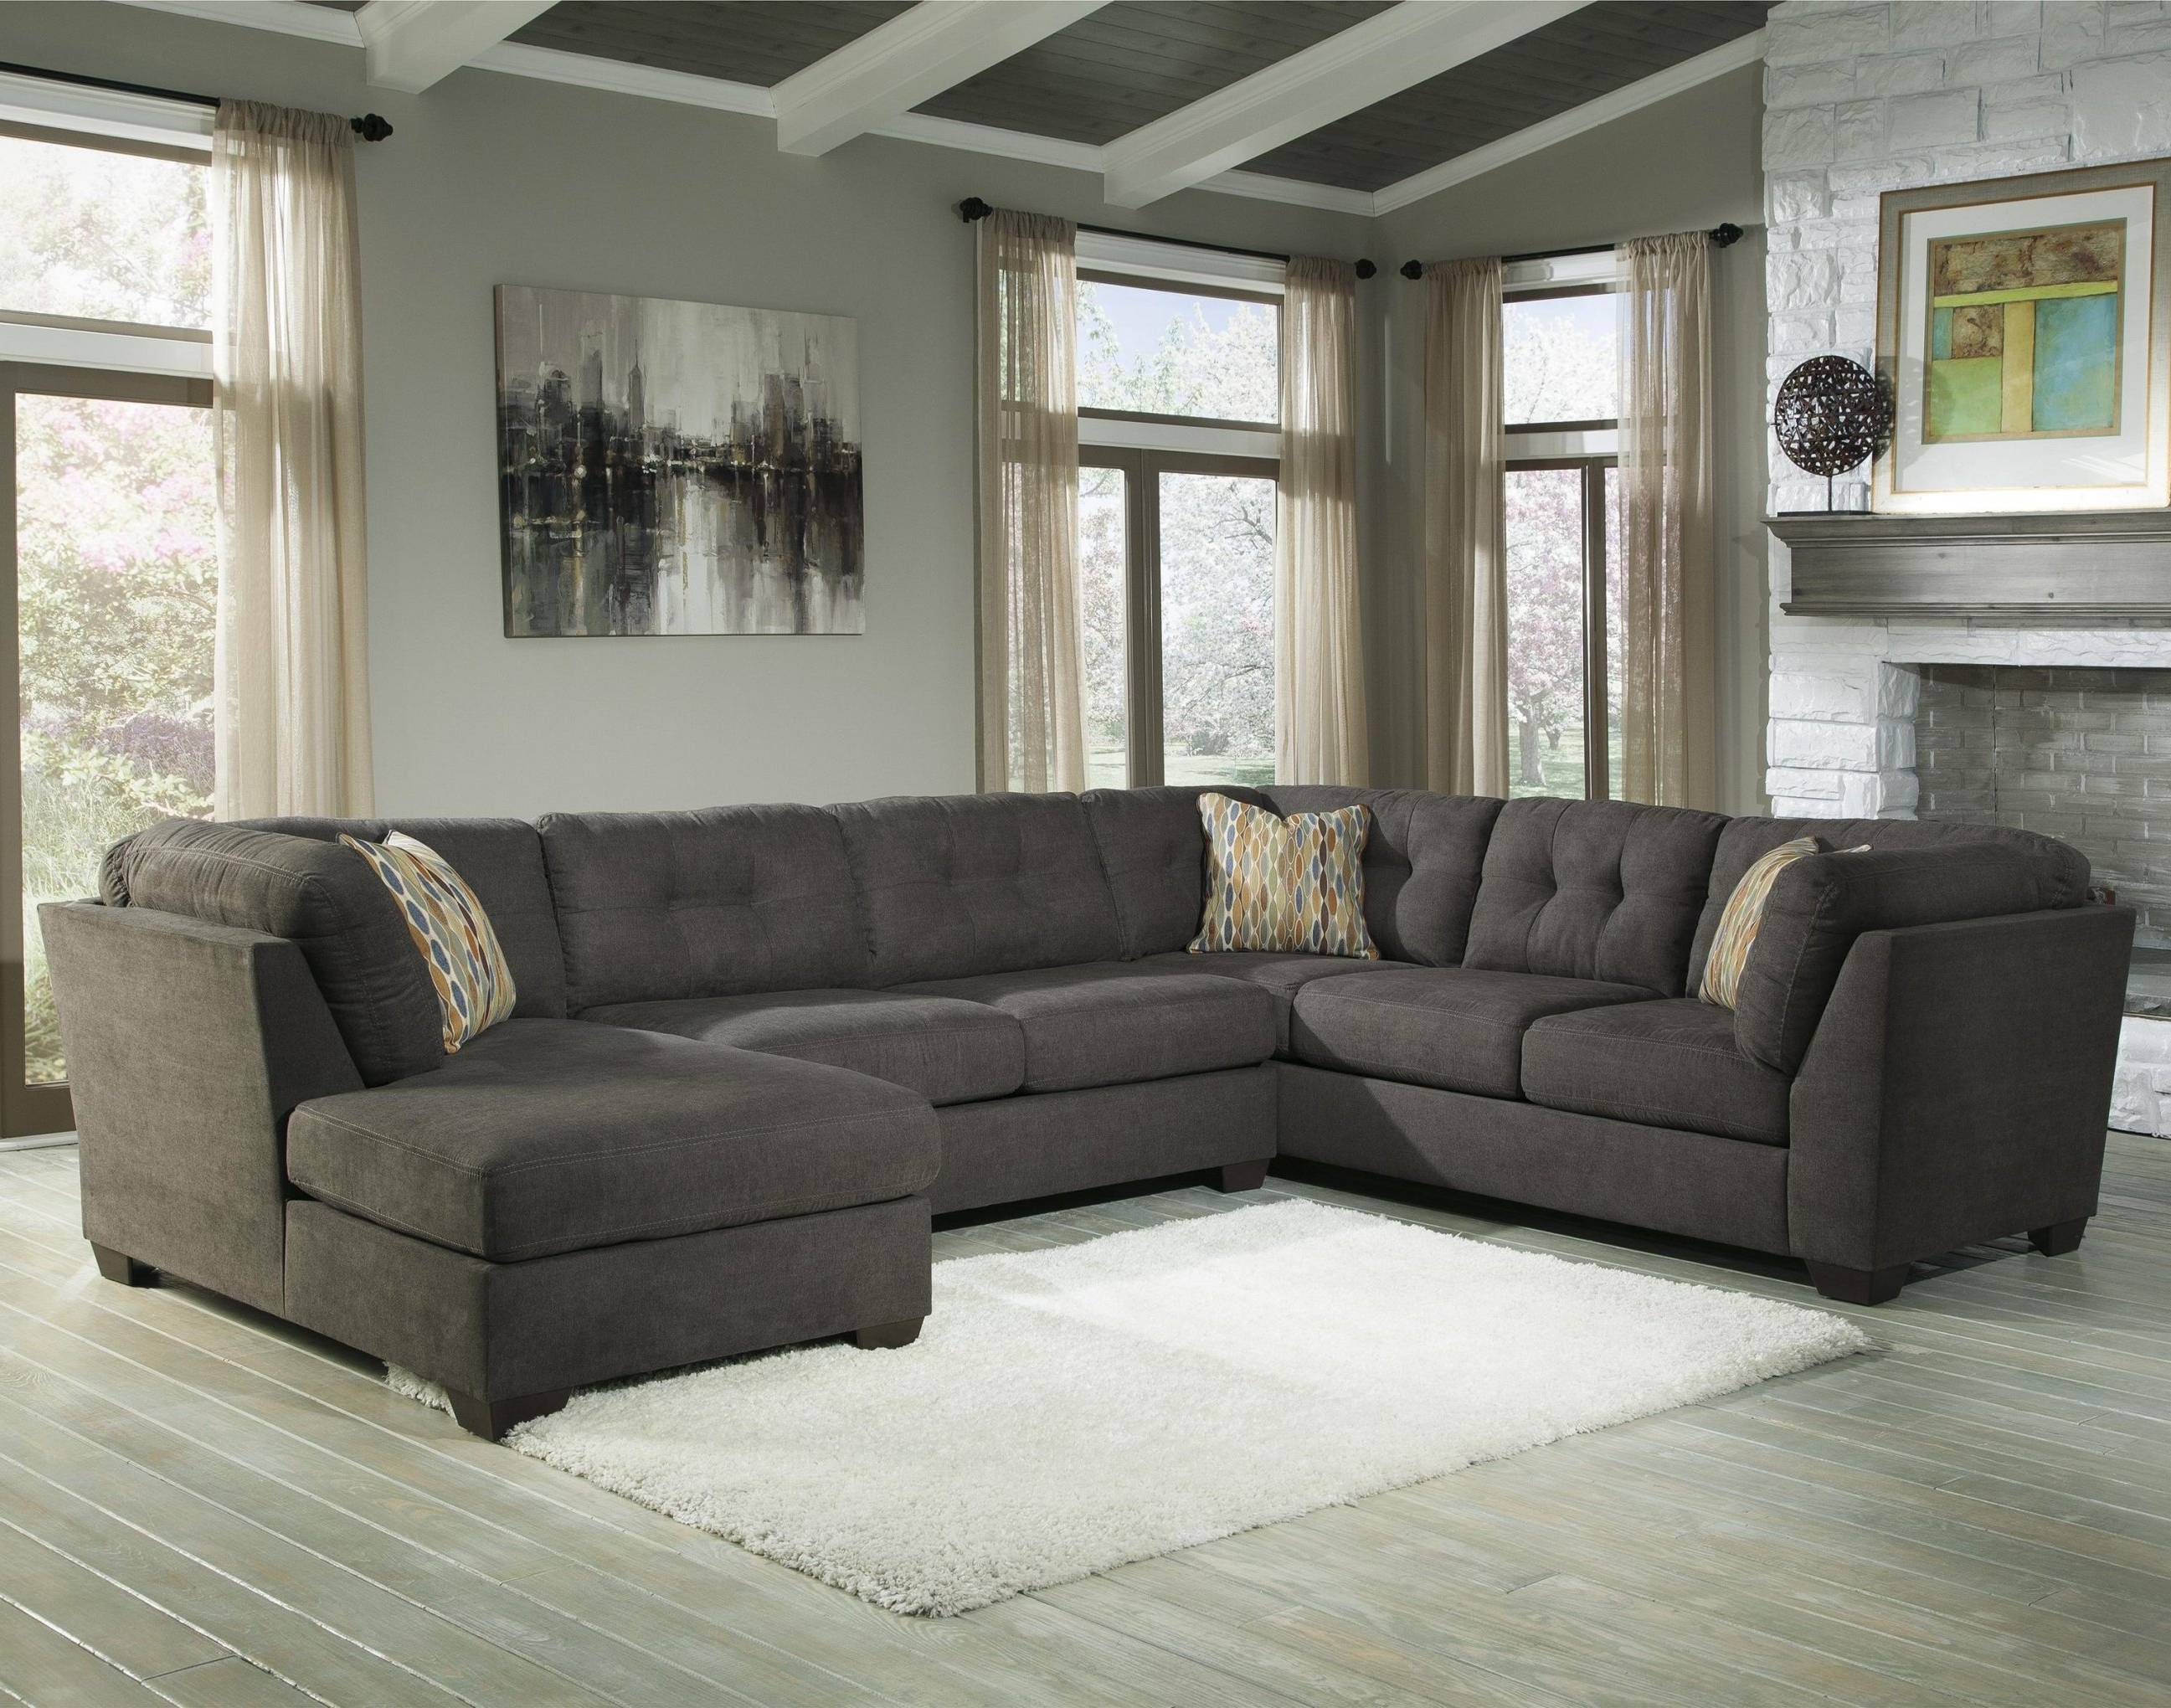 Piece Modular Sectional W/ Armless Sleeper & Right Chaise In 3 Pertaining To Well Liked 3 Piece Sectional Sleeper Sofas (View 16 of 20)